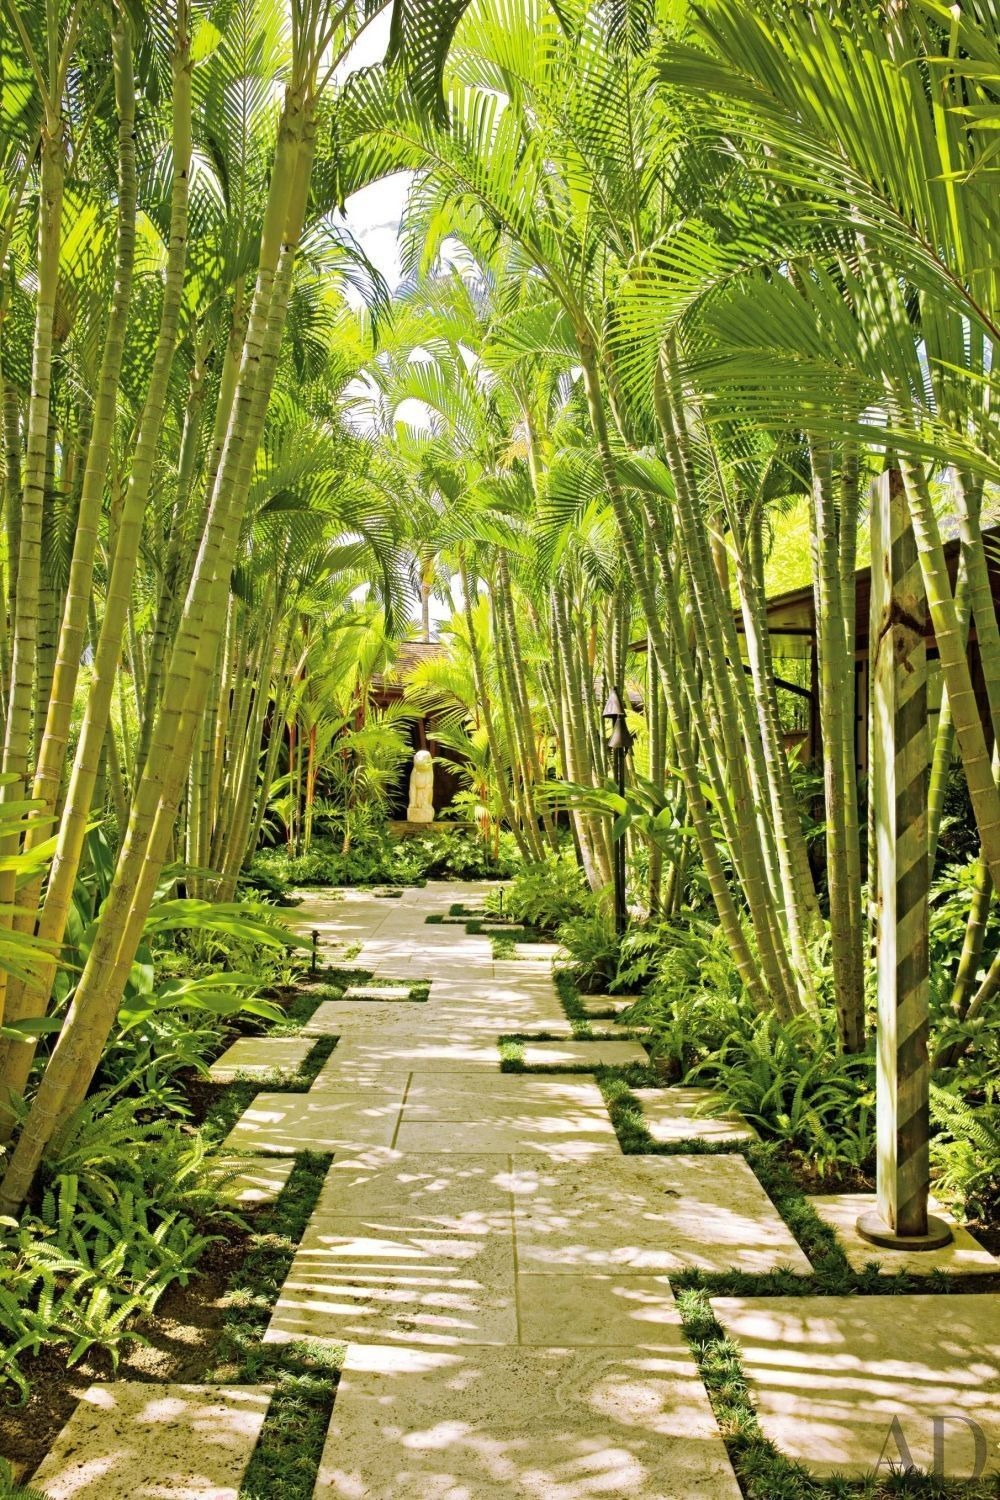 Merveilleux Exotic Garden By Werner Design Associates And Mark De Reus In Kona, Hawaii